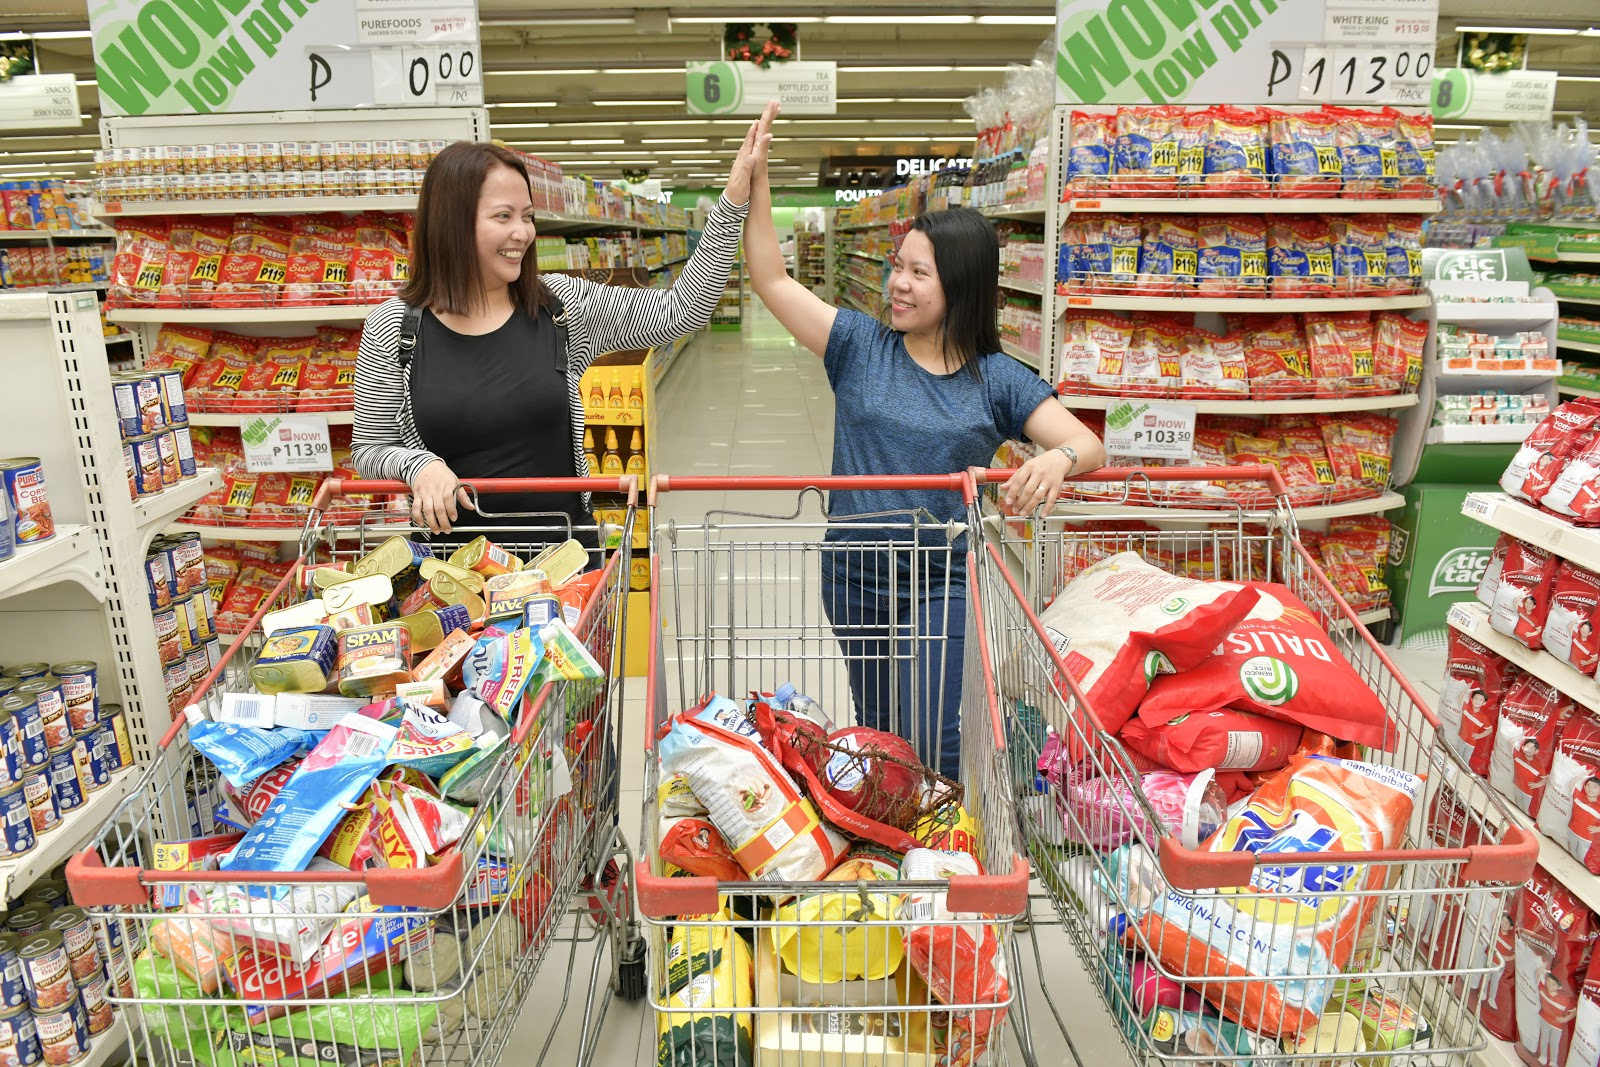 Lucky PayMaya users get treated to a grocery shopping spree at Robinsons Supermarket